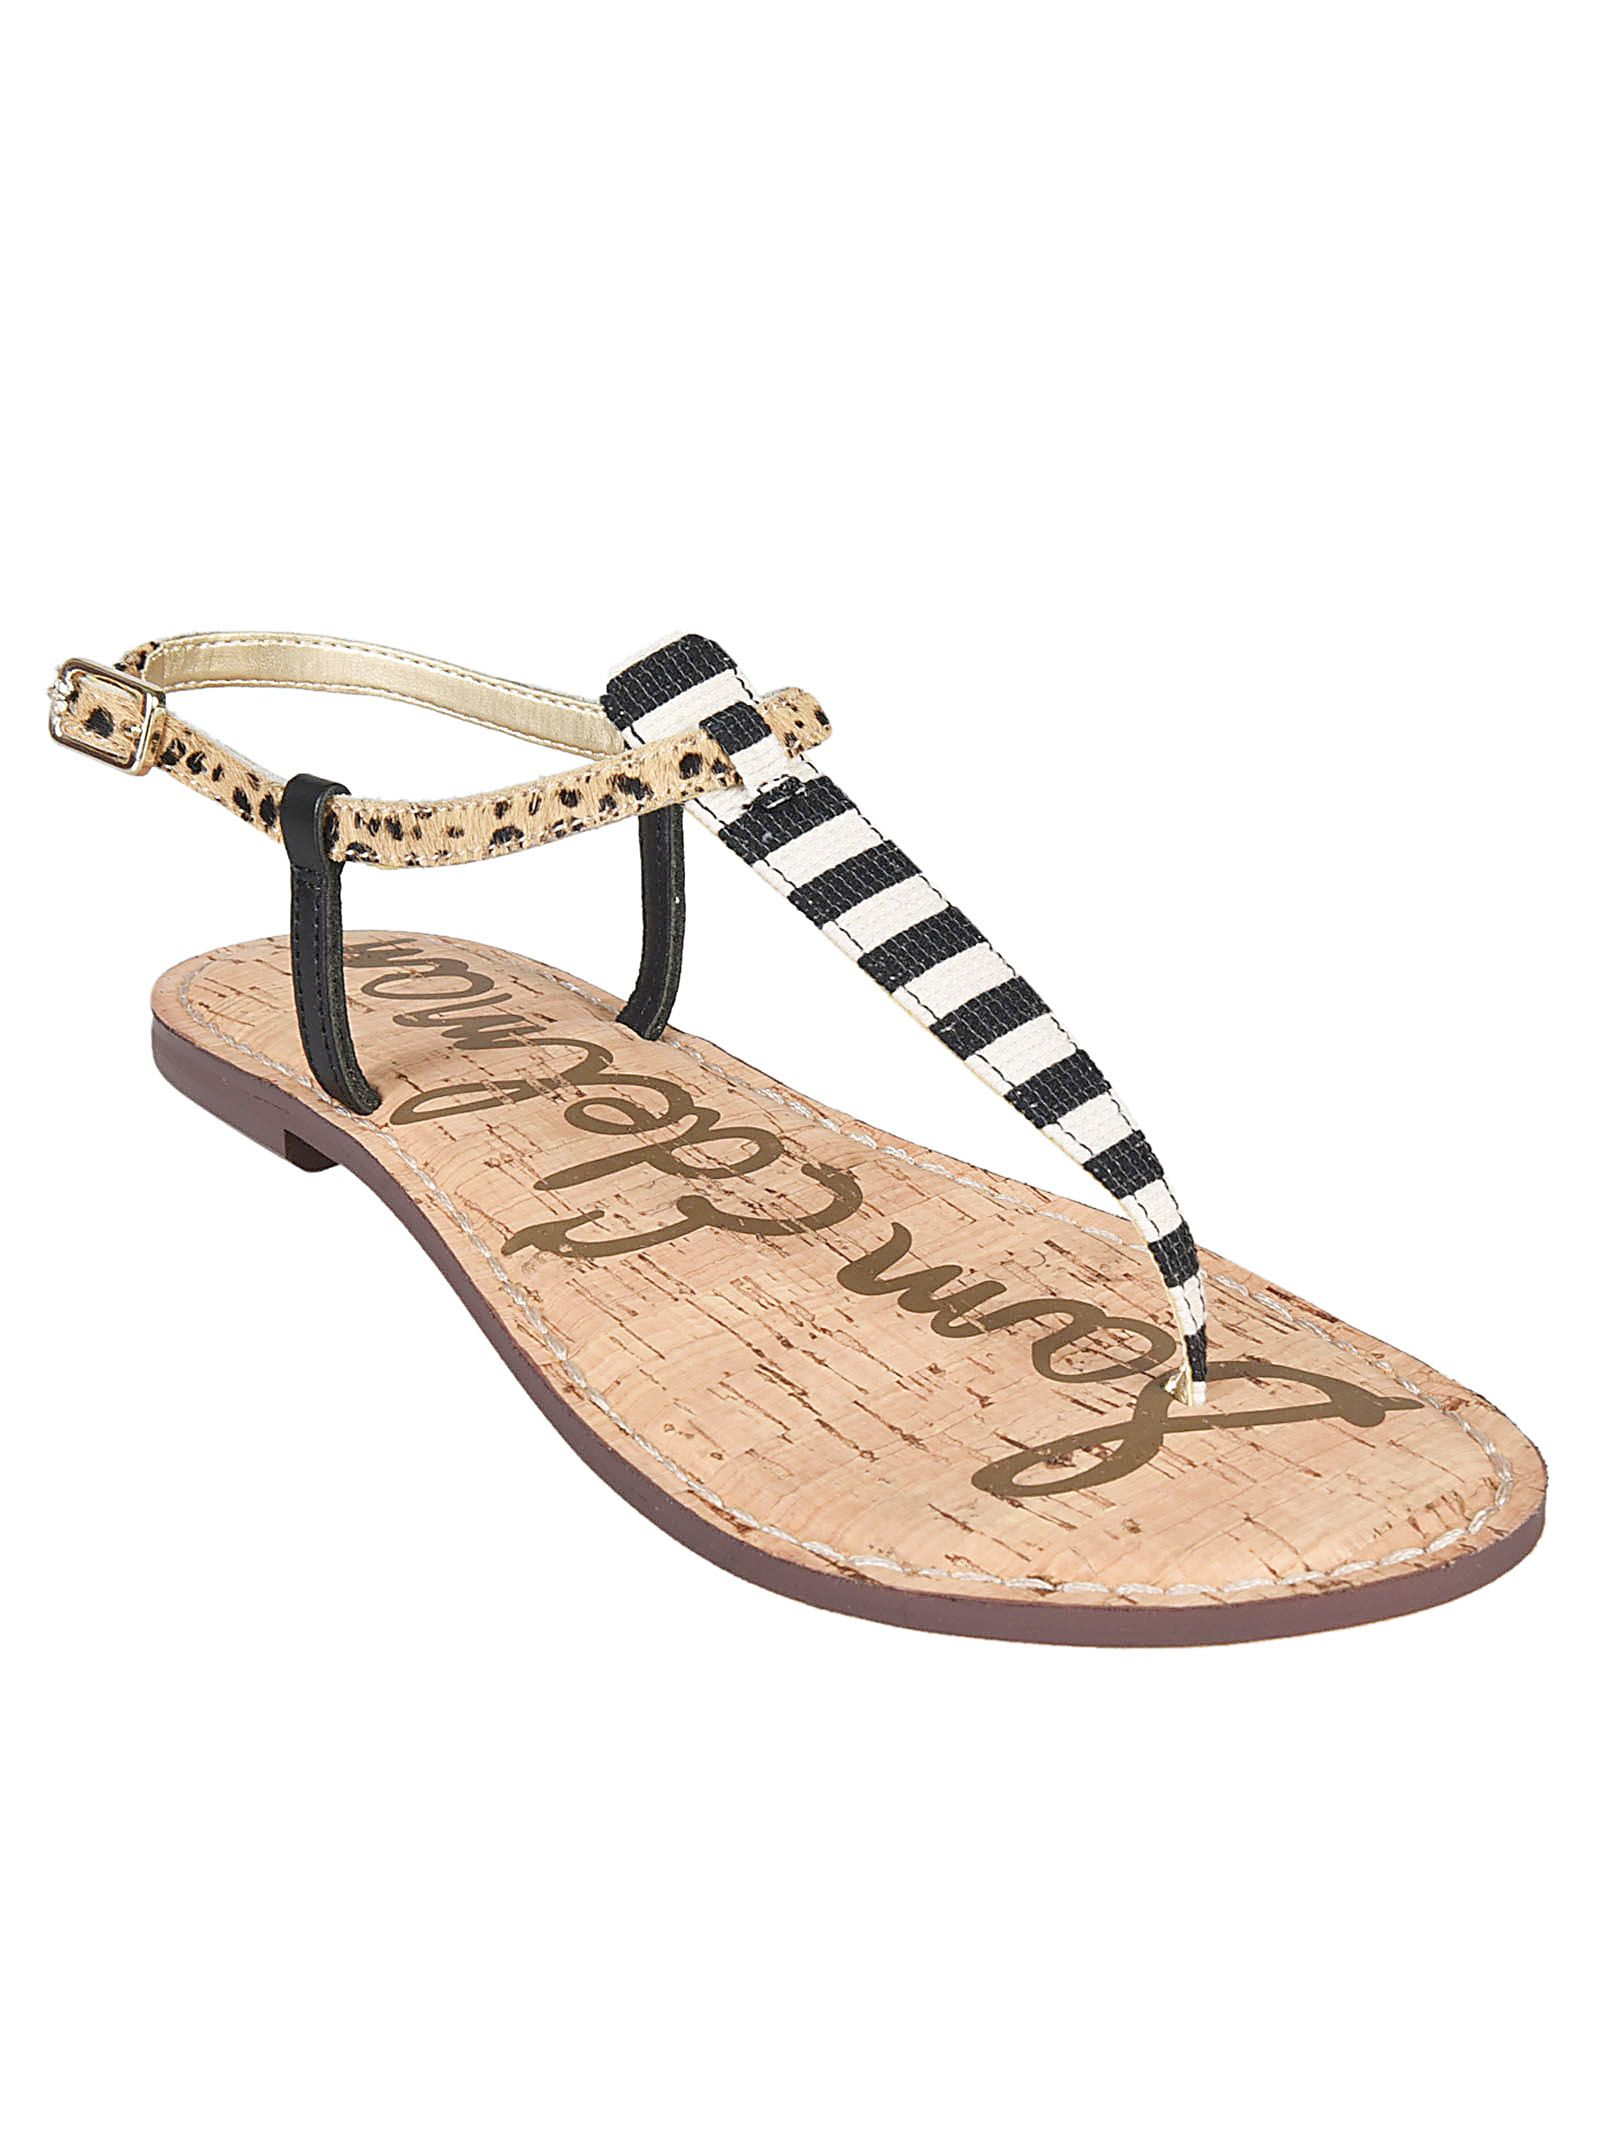 47df4aa0f89858 Sam Edelman Sam Edelman Gigi Flat Sandals - Multicolor - 10587753 ...